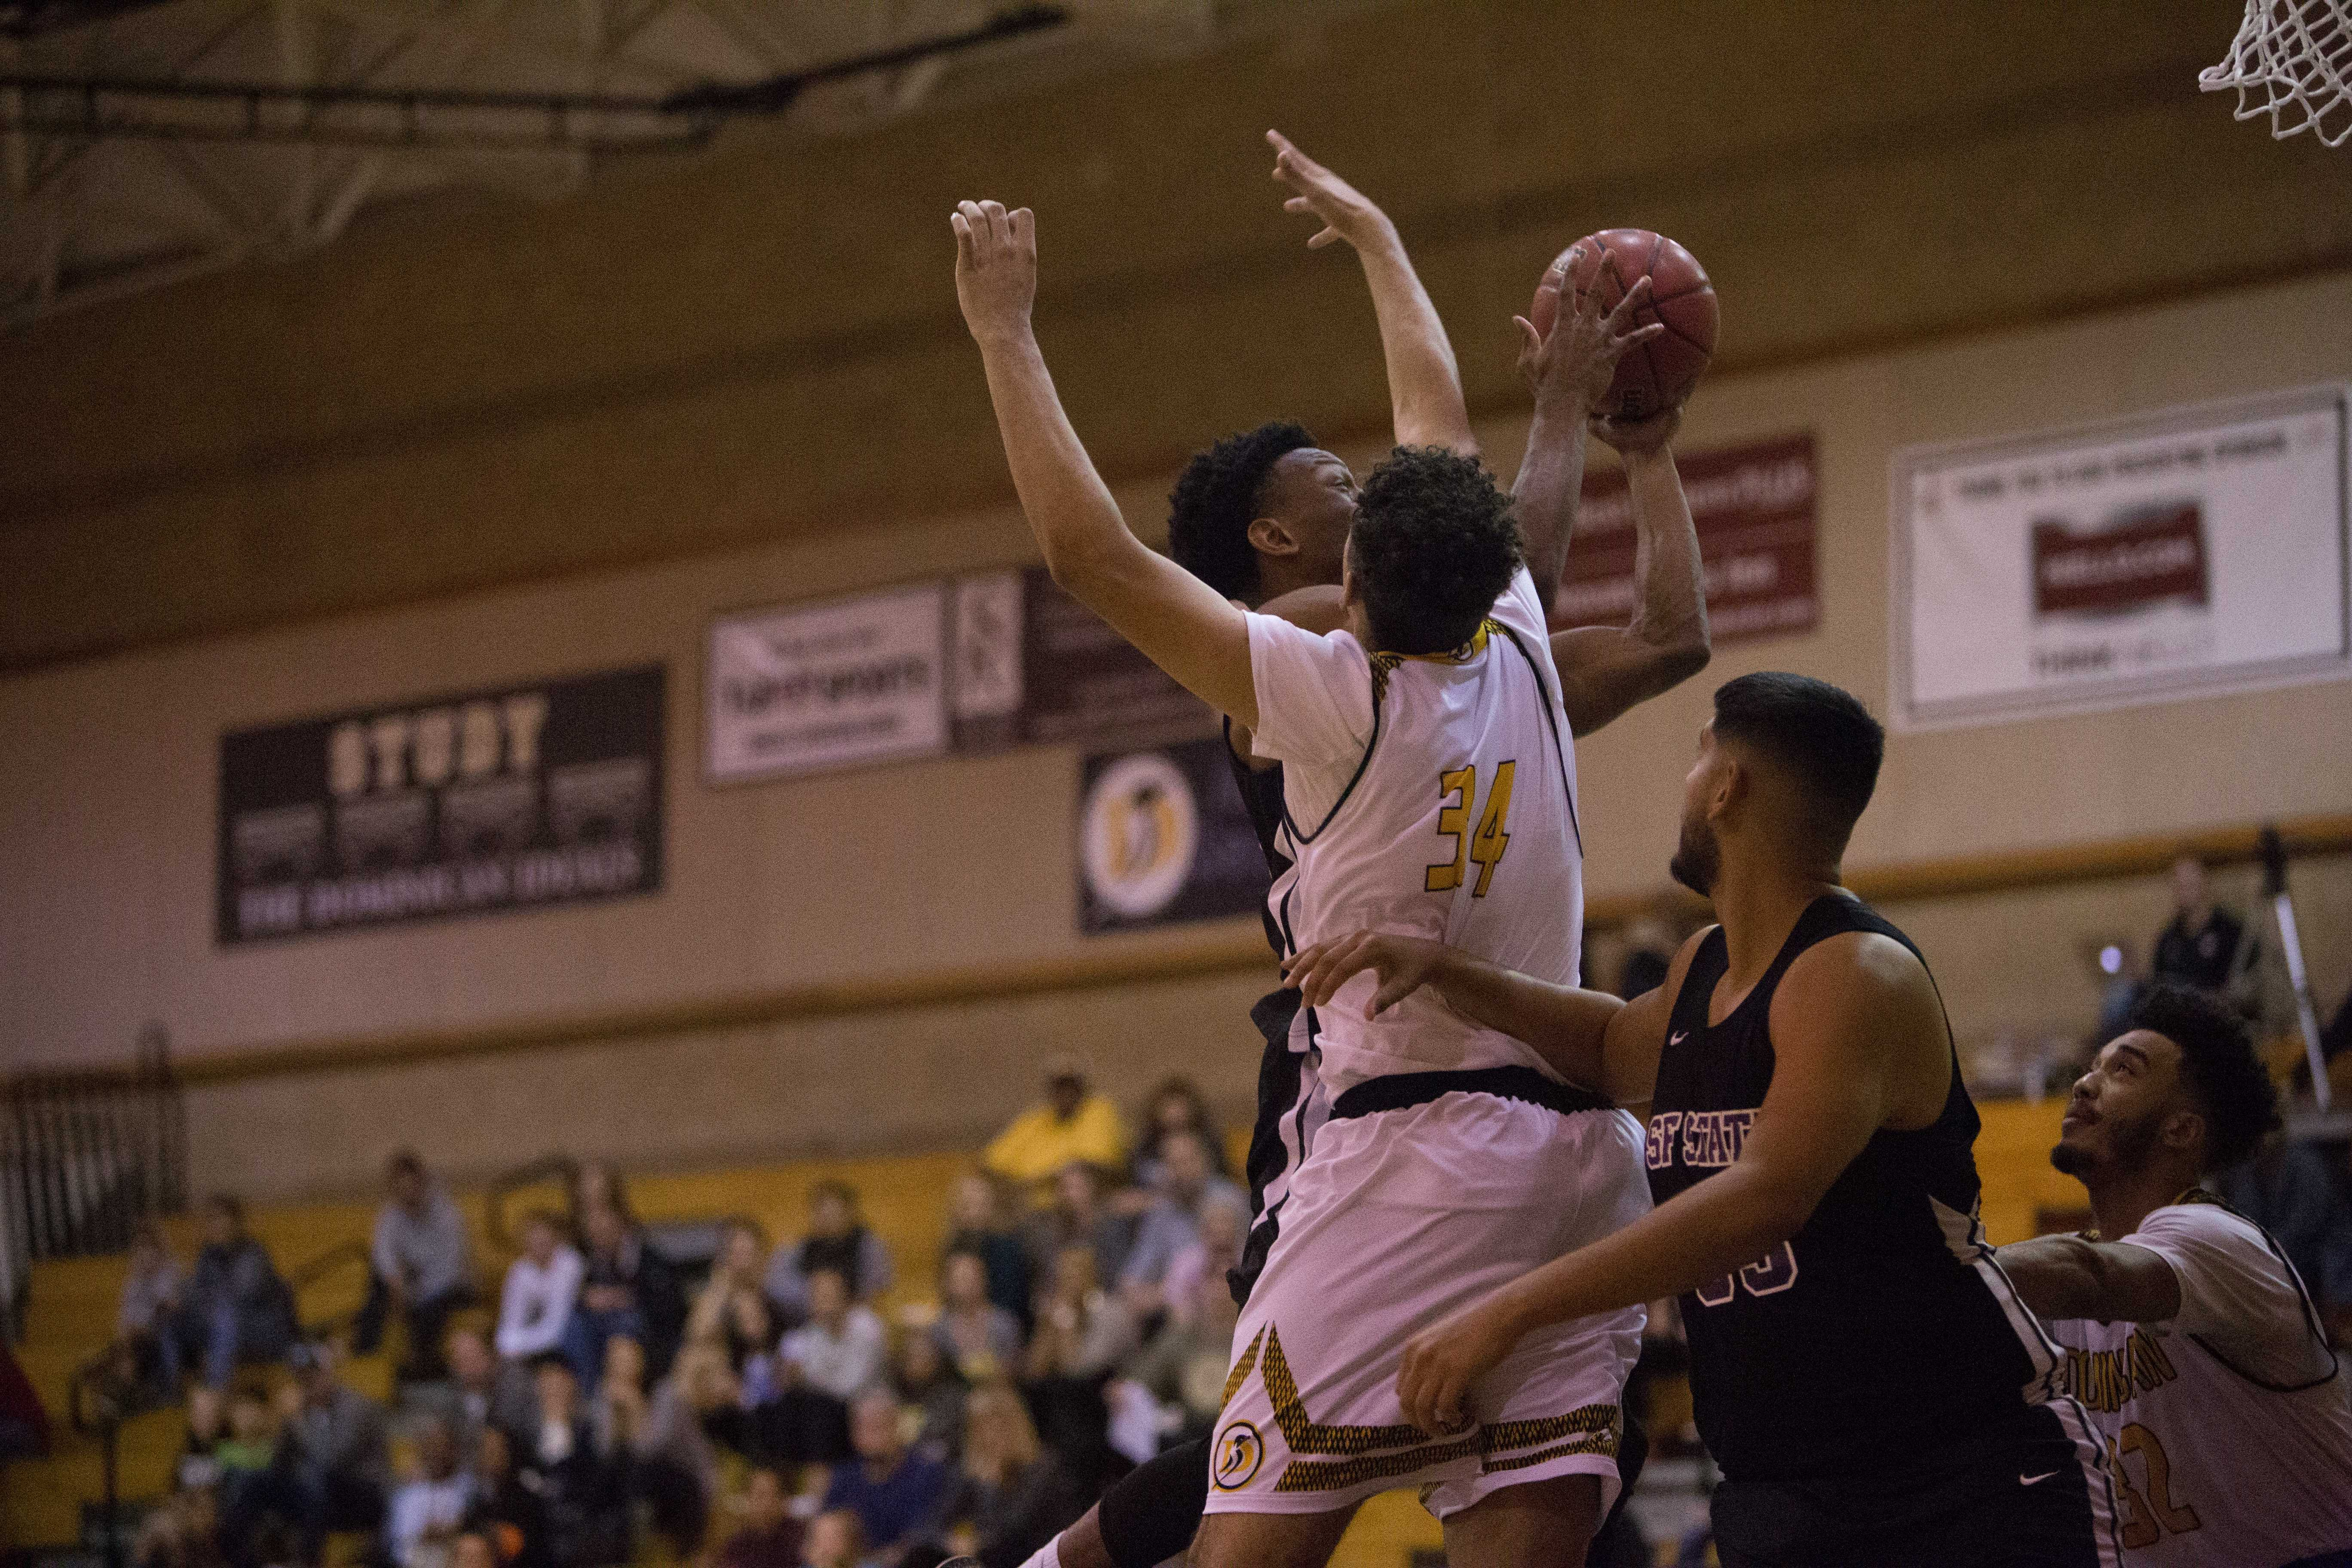 Chiefy Ugbaja (#23) slides past a UC Dominican defender for a lay up in San Rafael, Nov. 11, 2017. Ugbaja finished with 21 points and 7 rebounds. (Mitchell Mylius / Golden Gate Xpress)